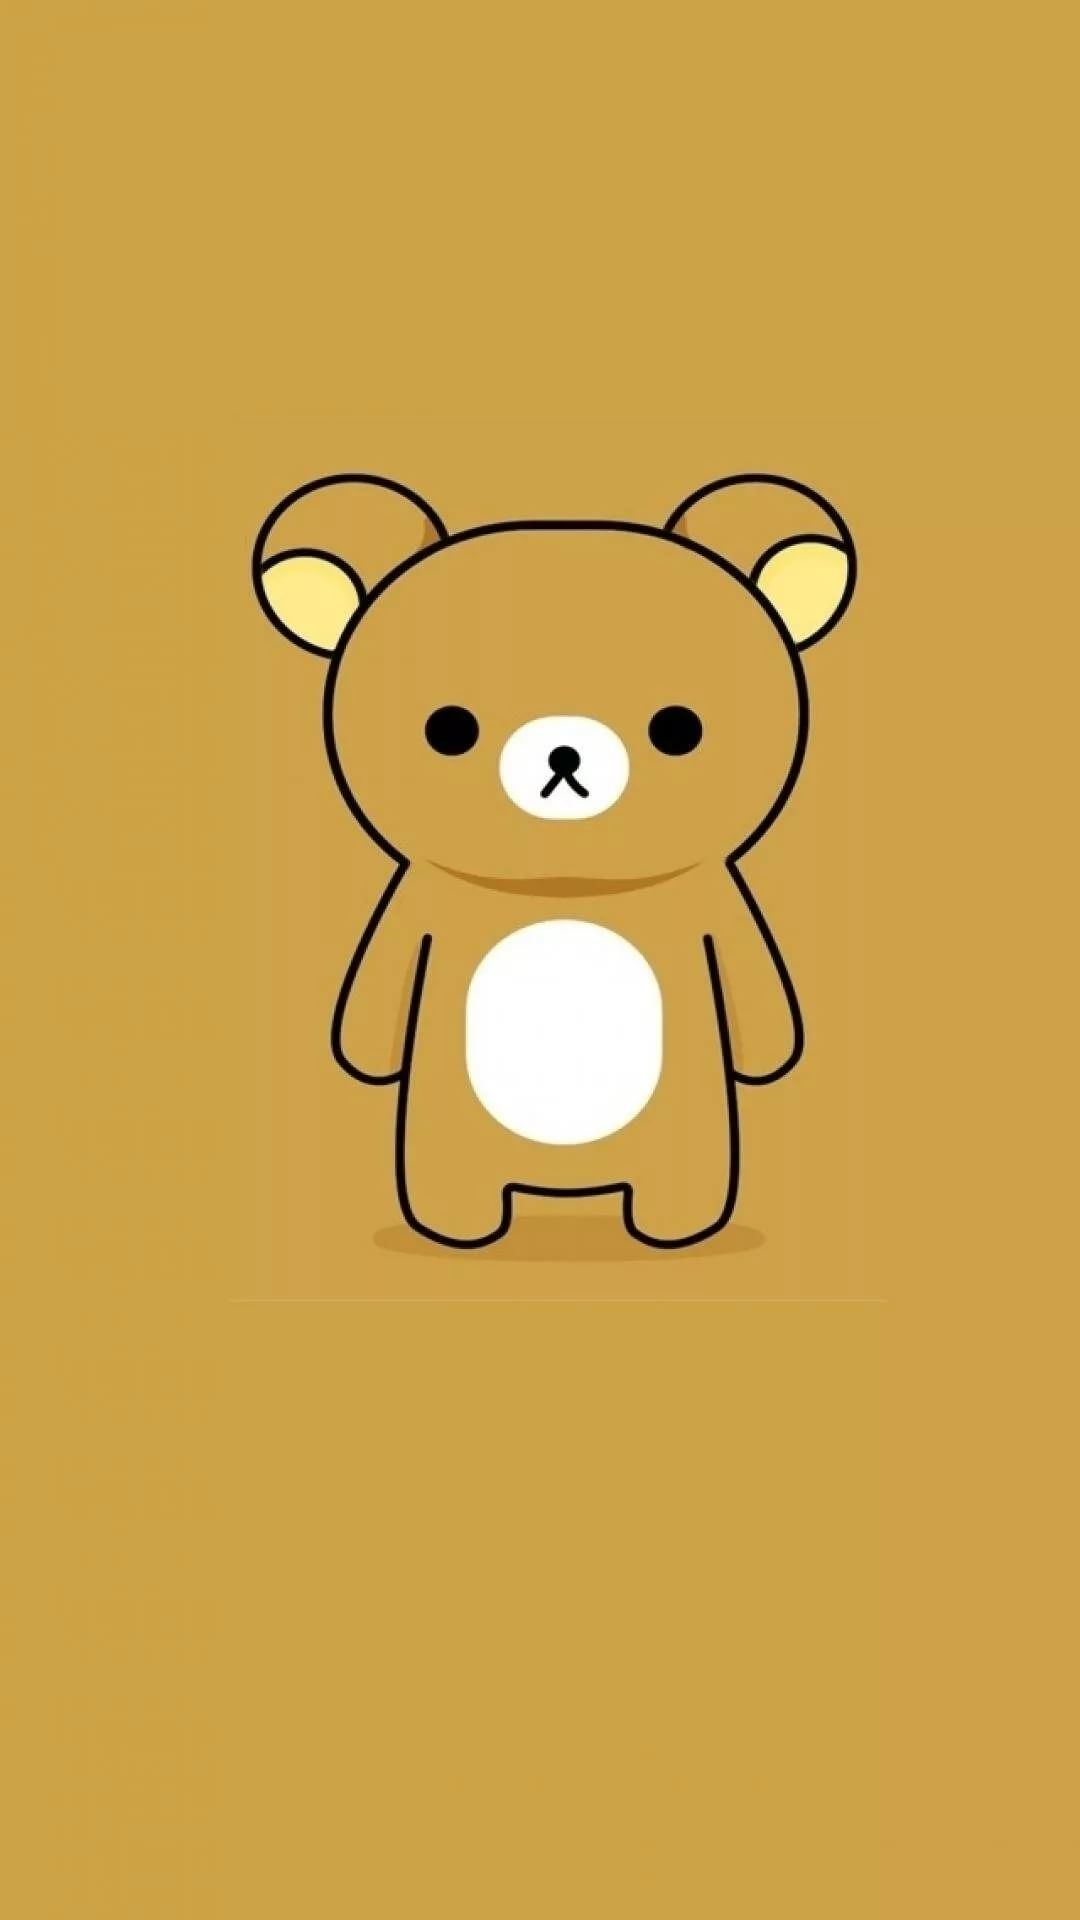 Rilakkuma phone wallpaper